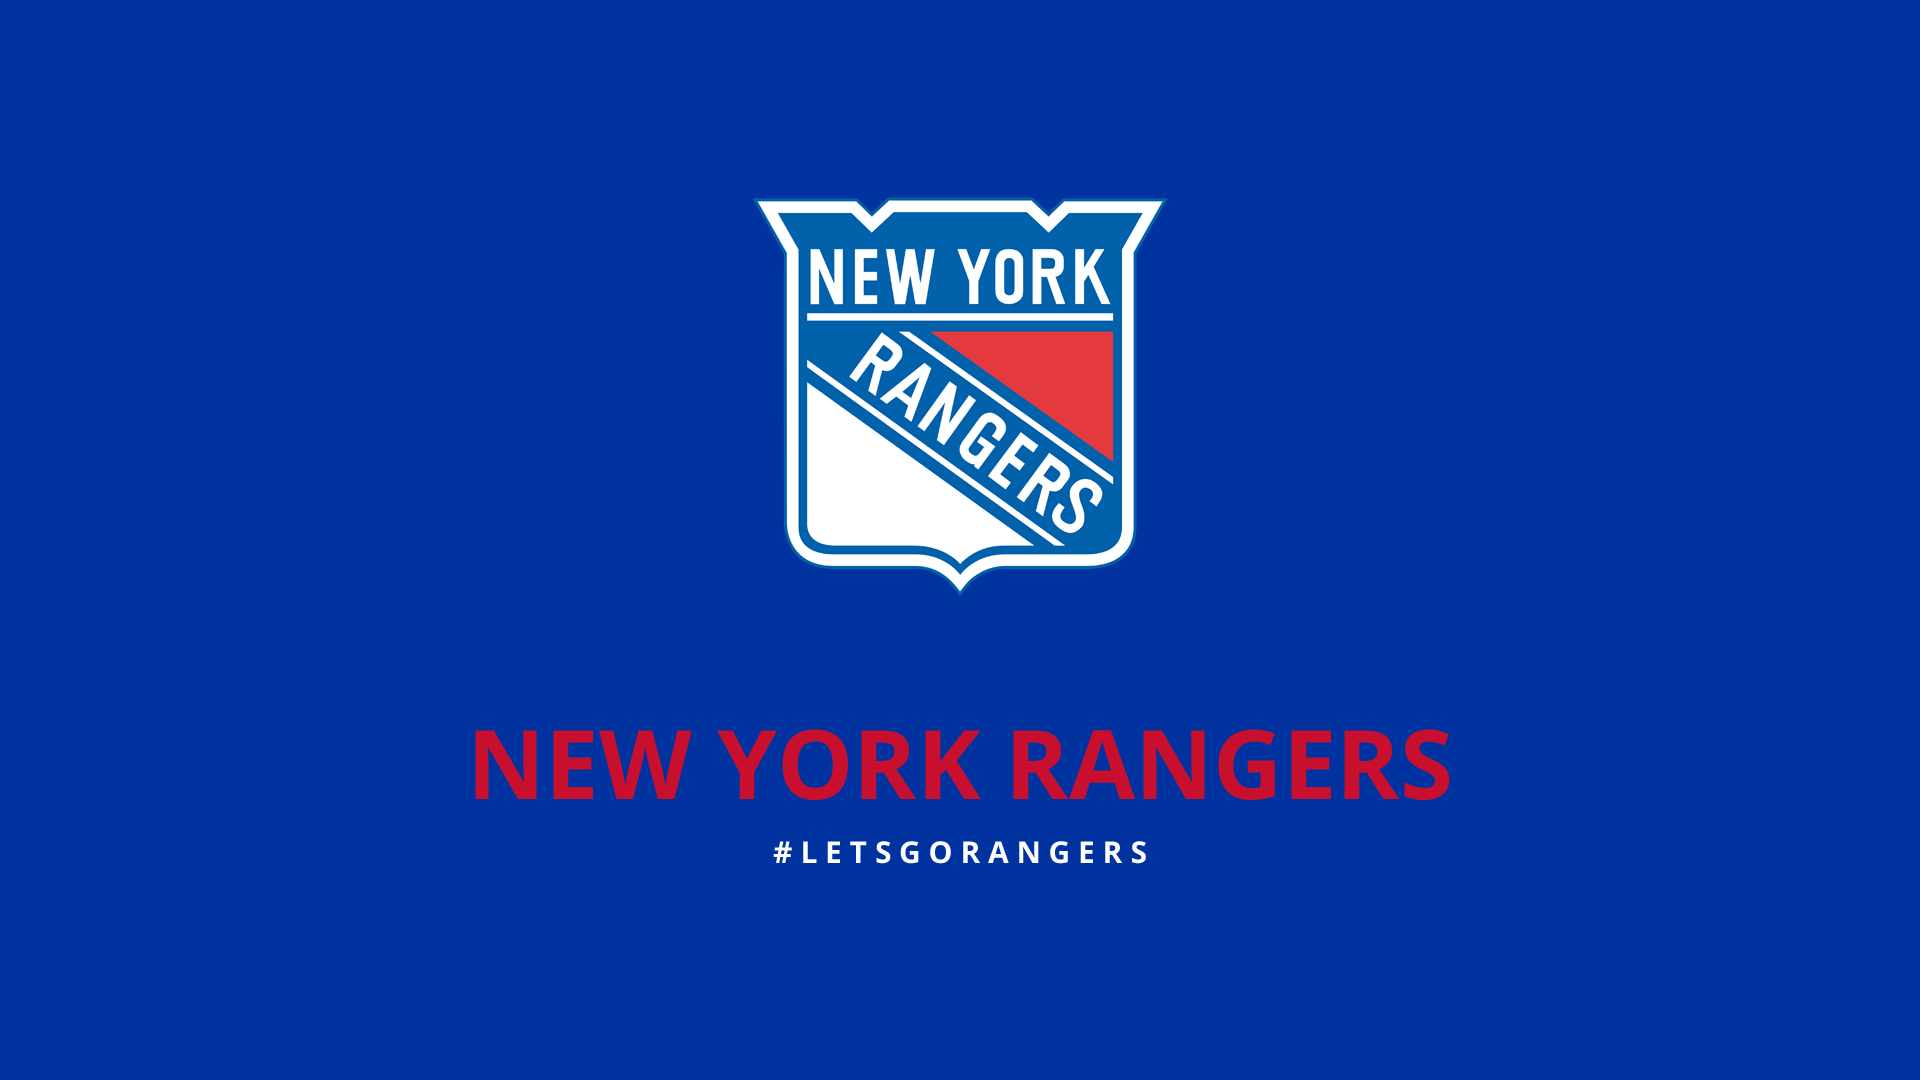 New York Rangers Wallpaper 47483 1920x1080 px ~ HDWallSource com